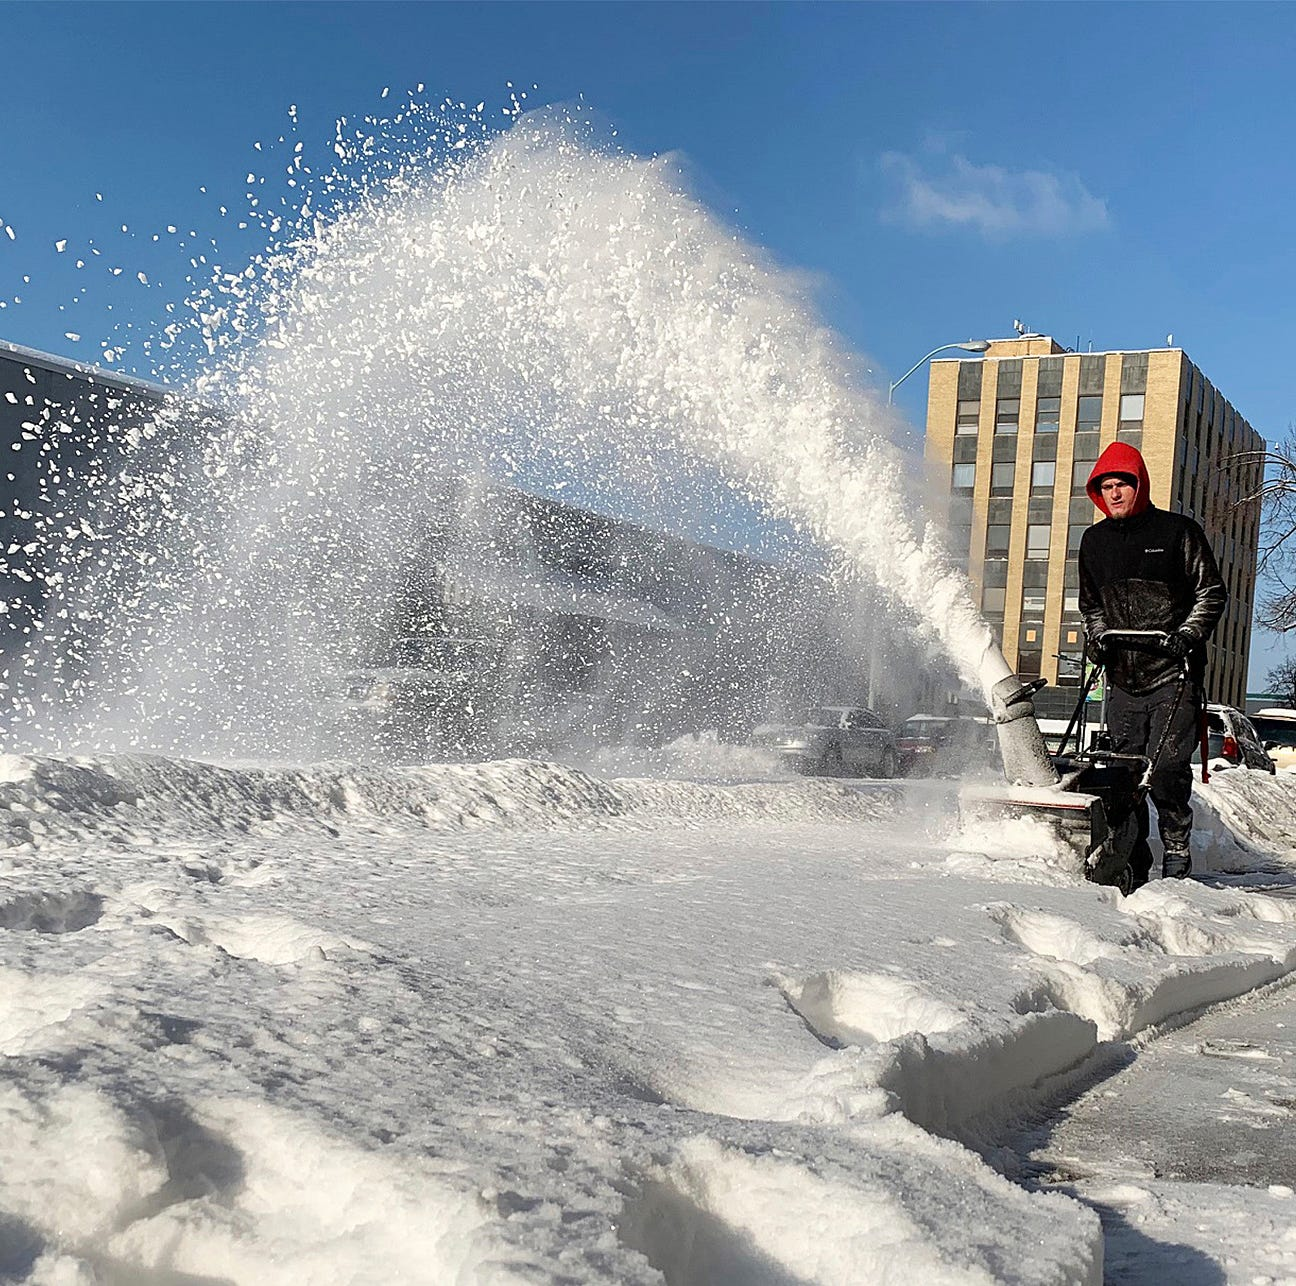 'Life-threatening' wind chills to overtake central Iowa following latest snowstorm, officials say